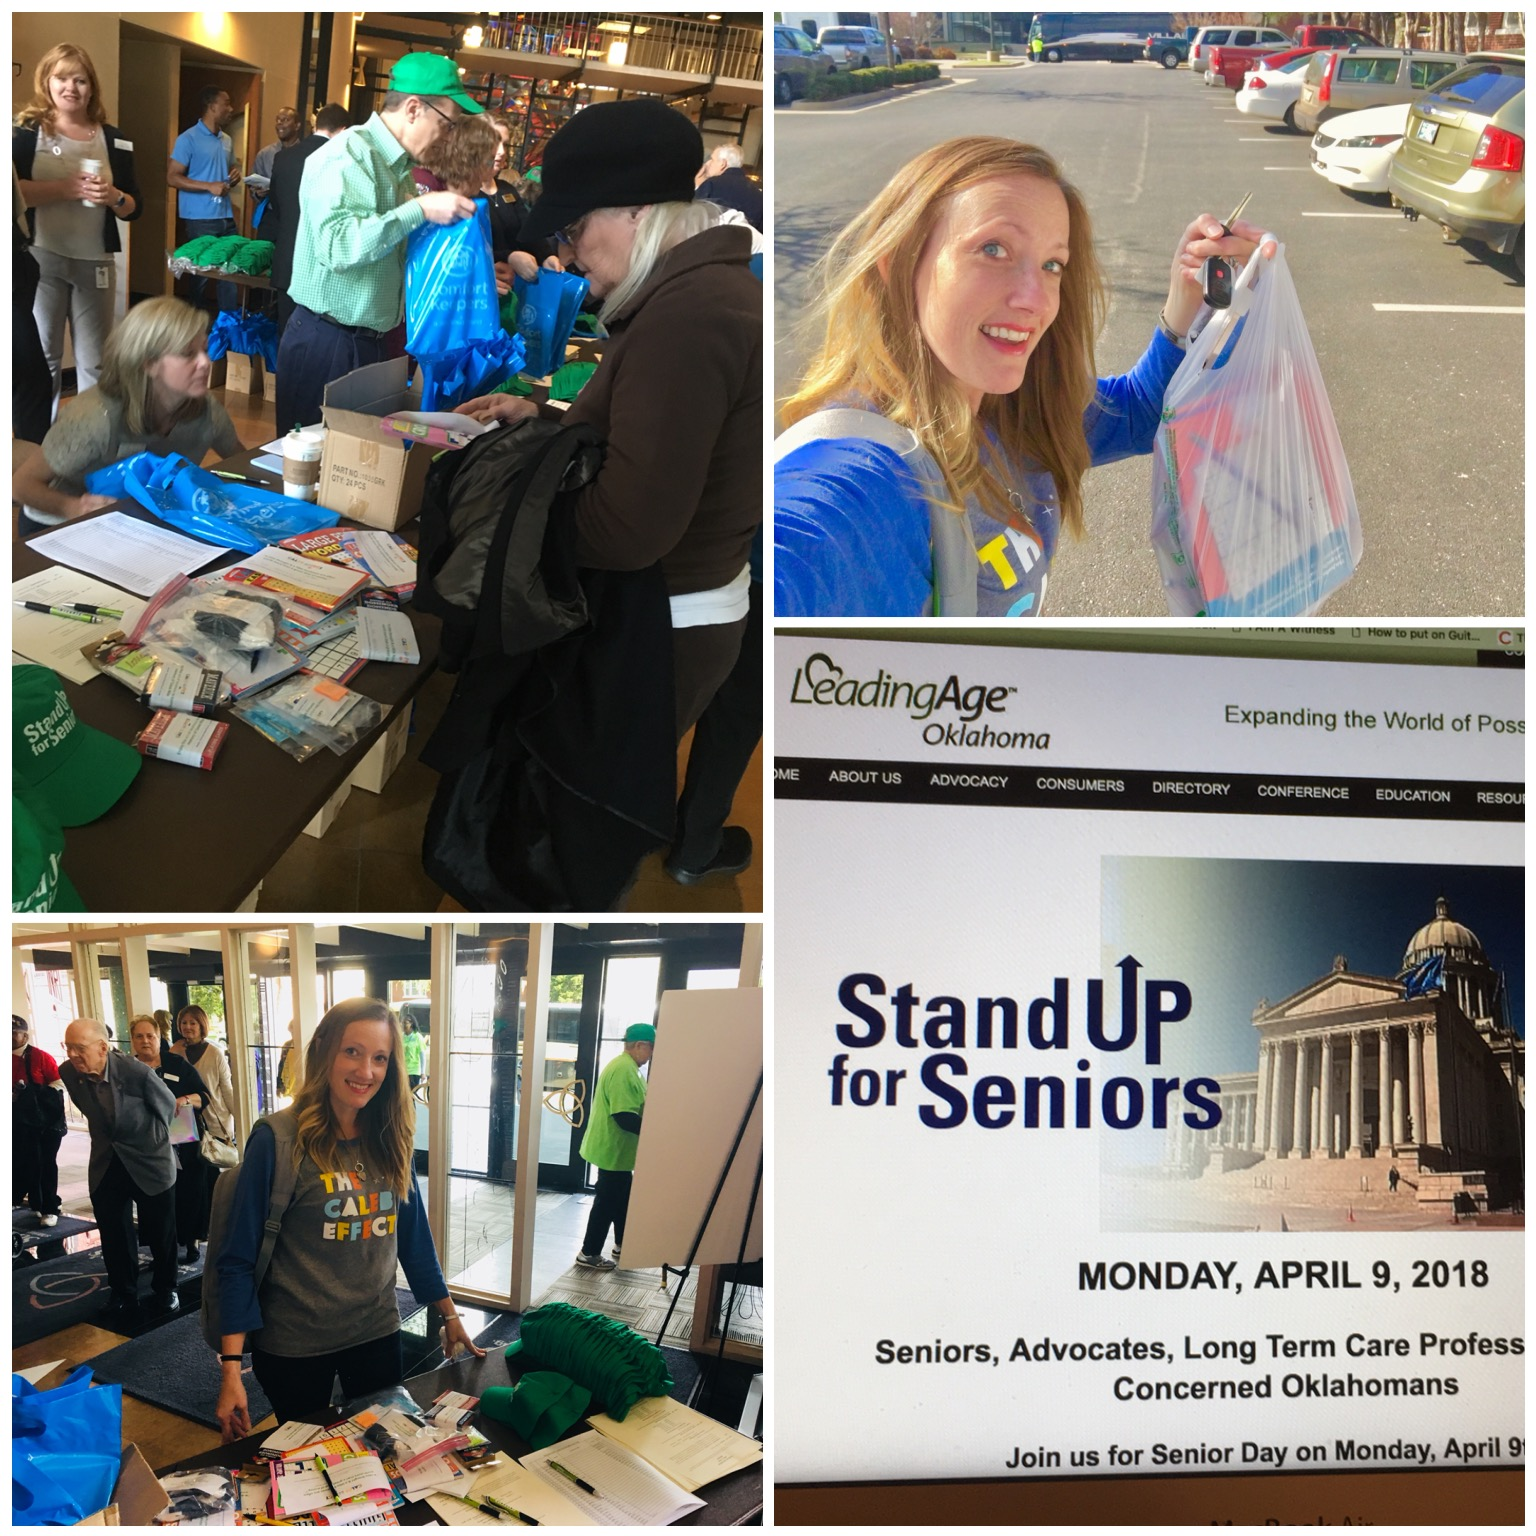 """Stop #5: St. Luke's Downtown (WHAT?) That's right. AFTER we had already decided to switch this month to celebrate seniors, I found this """"Stand Up for Seniors"""" event hosted by LeadingAge Oklahoma. It was originally scheduled to be at the State Capitol but because of the teacher walkout it just """"coincidentally"""" moved to the same place where you went to daycare. I felt bad not sticking around or saying """"hi"""" to anyone, but I did drive past your class, playground, and drop-off/pick-up parking. Whew.— with  LeadingAge at  St. Luke's United Methodist Church ."""